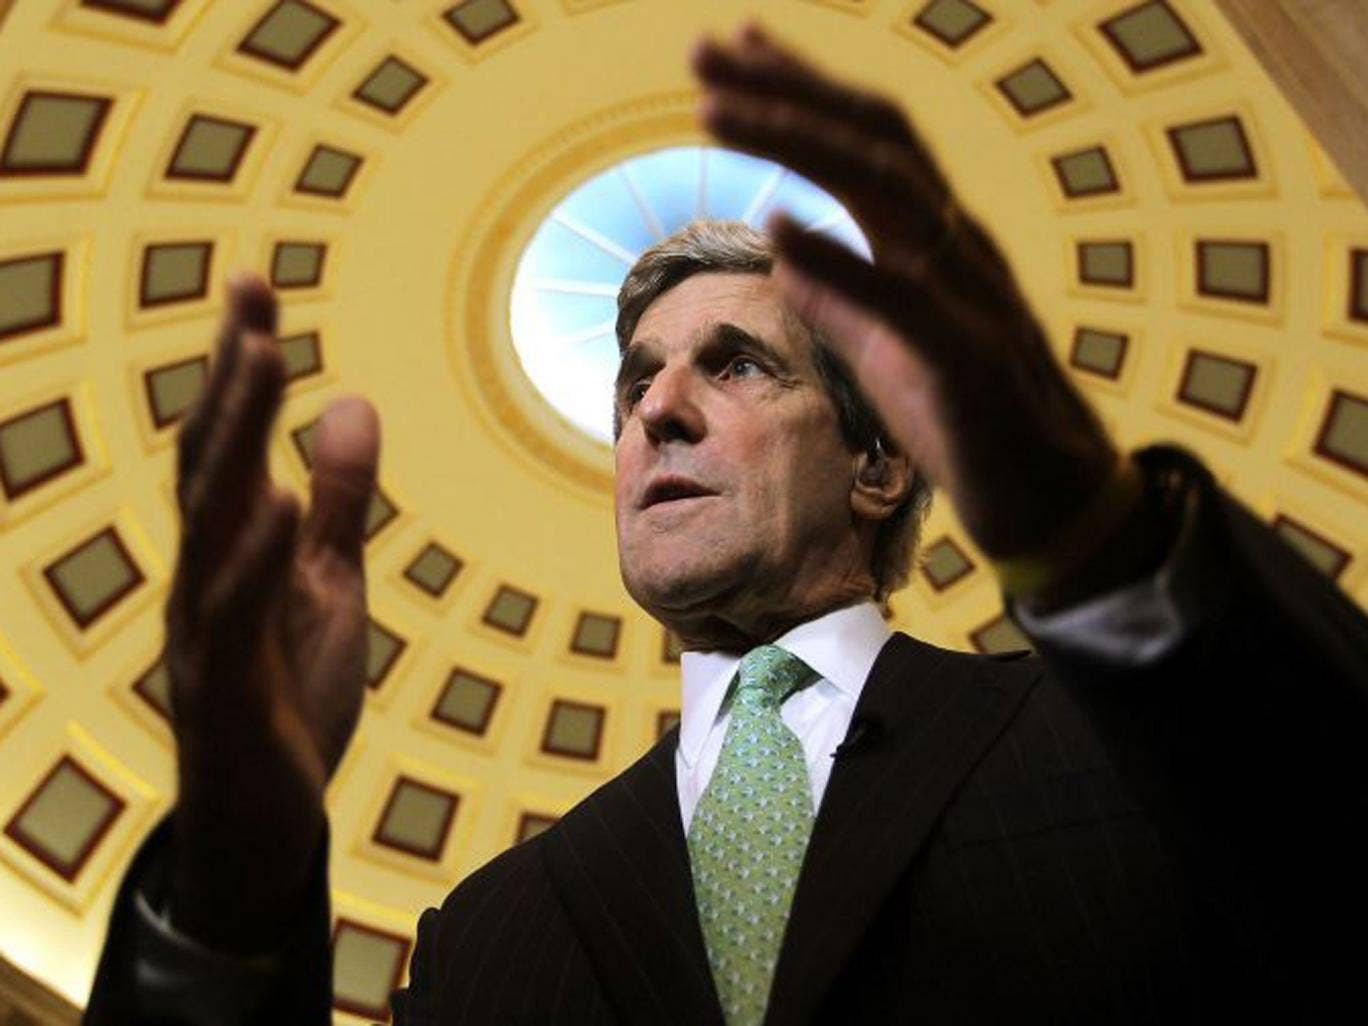 John Kerry is the uncontroversial choice for the post